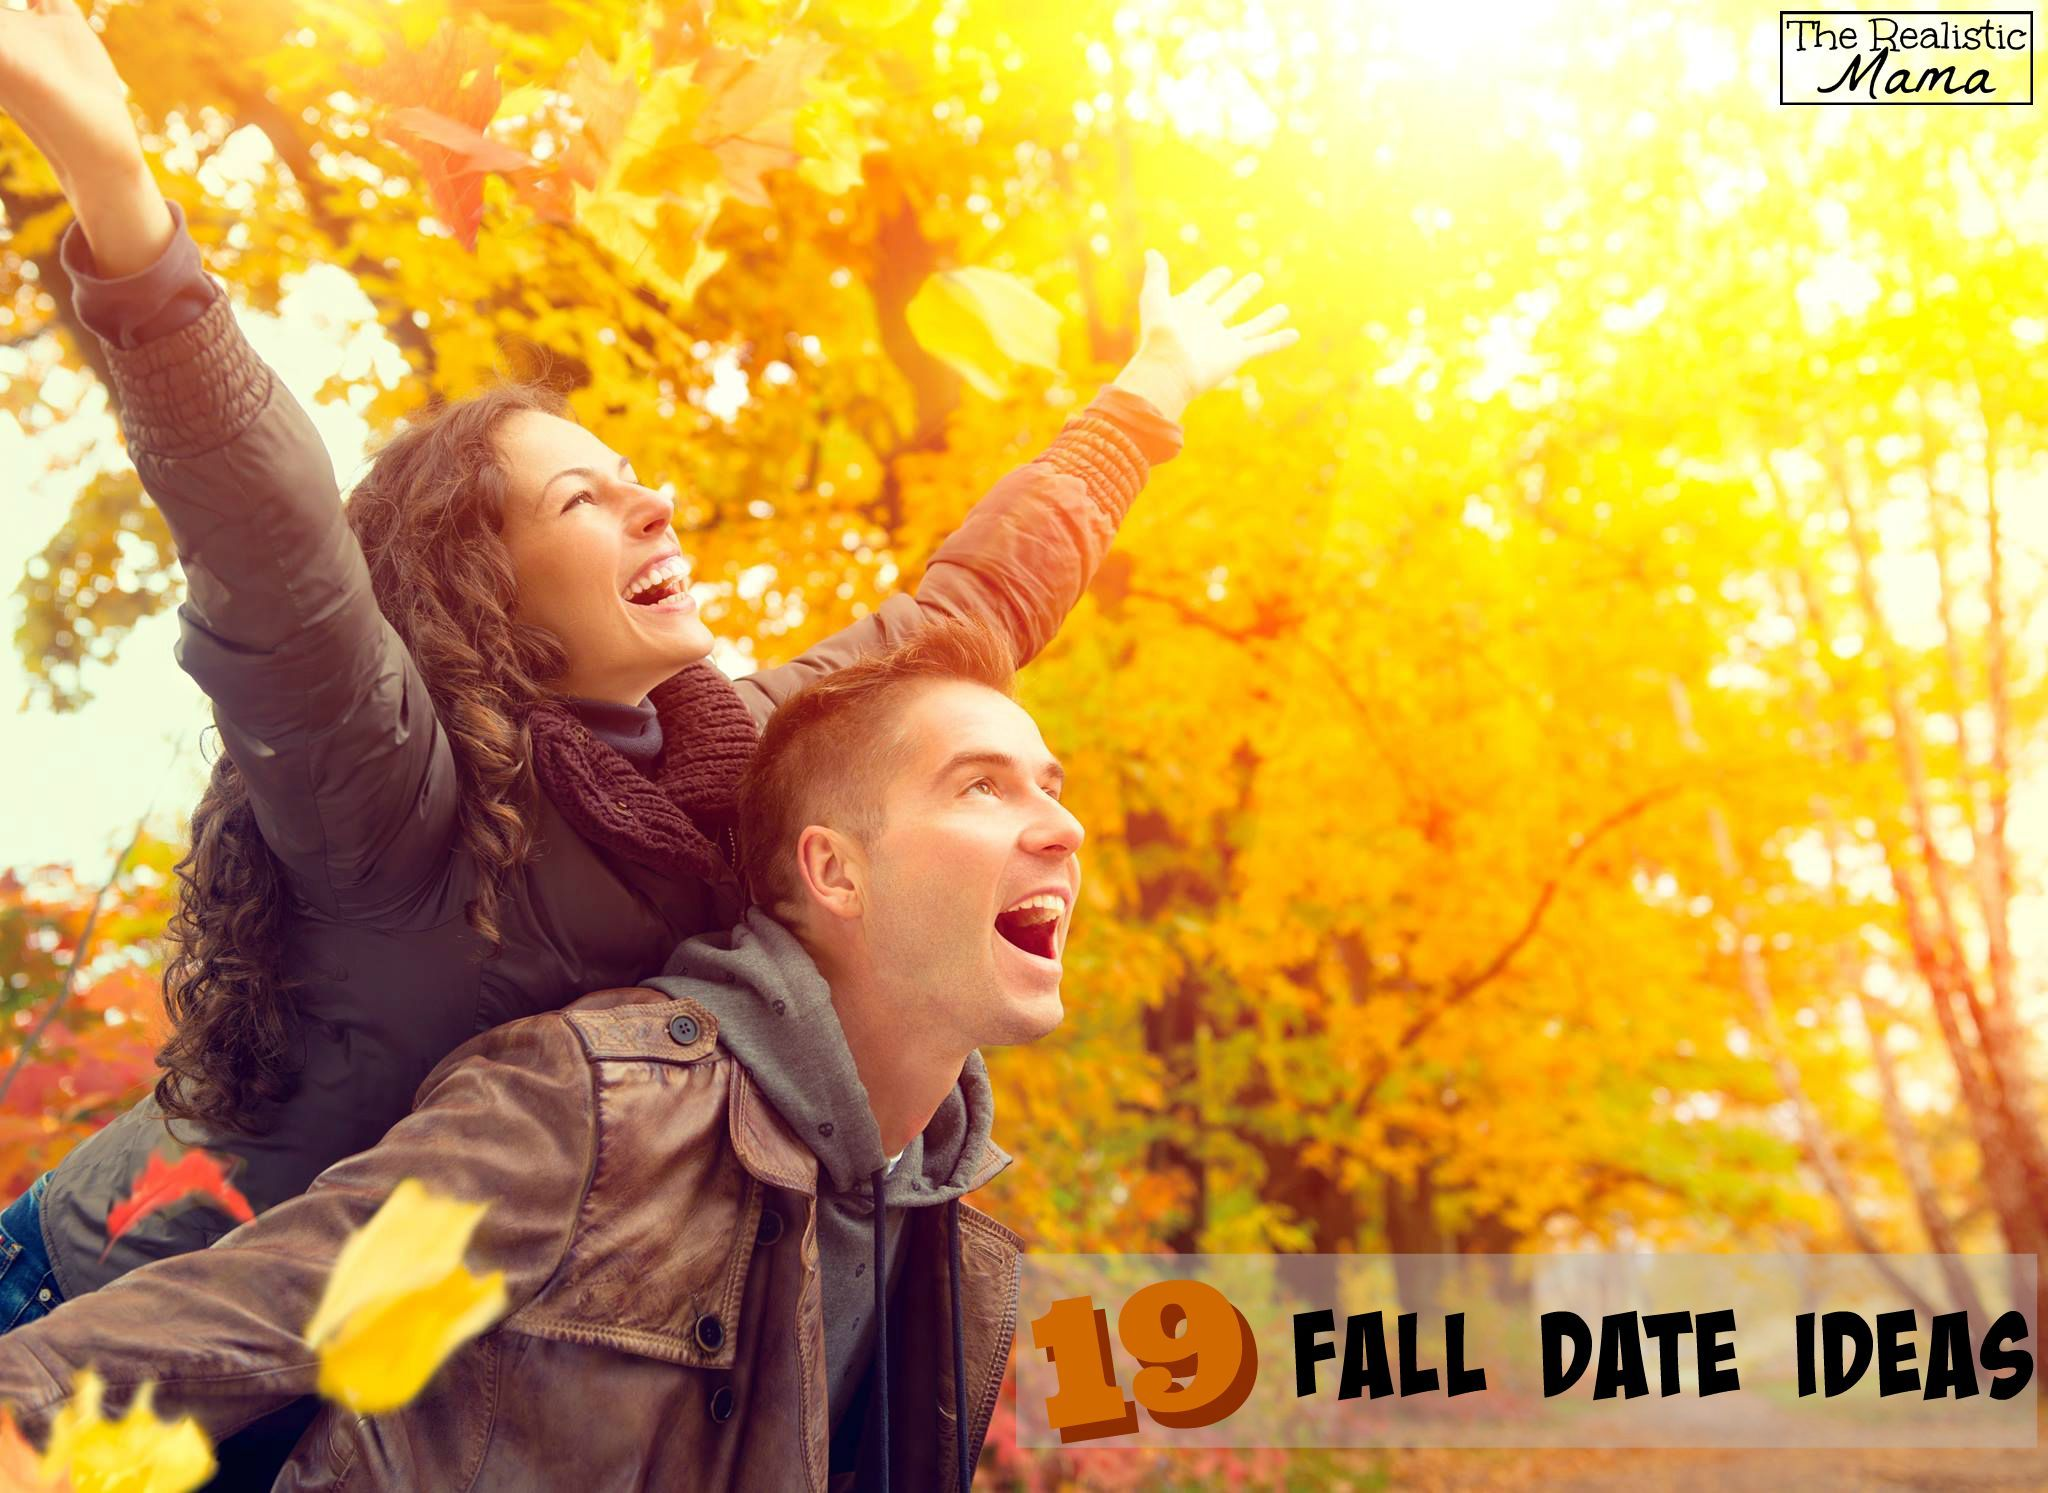 Fall is my favorite season - isn't it everyone's? Here are 19 of our favorite Fall Date Ideas to help get you out and enjoying your man in this beautiful season!